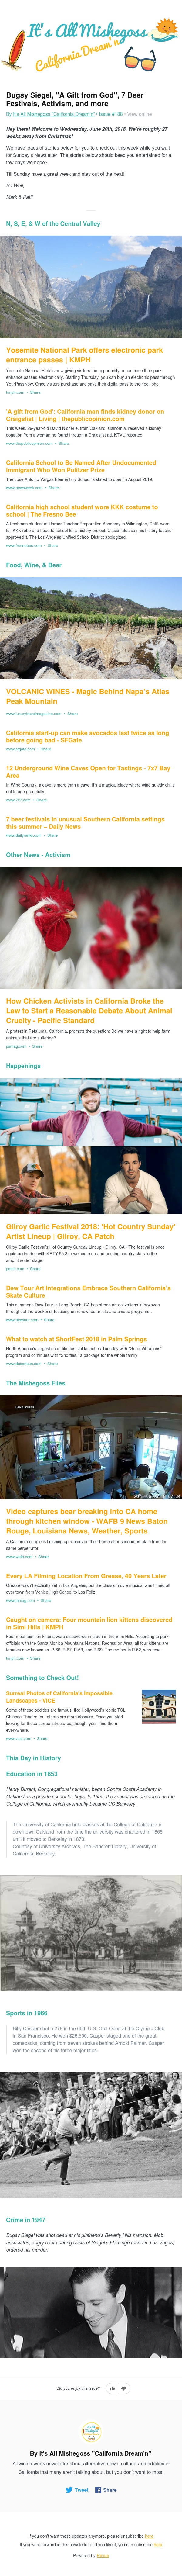 """Bugsy Siegel, """"A Gift from God"""", 7 Beer Festivals, Activism, and more"""